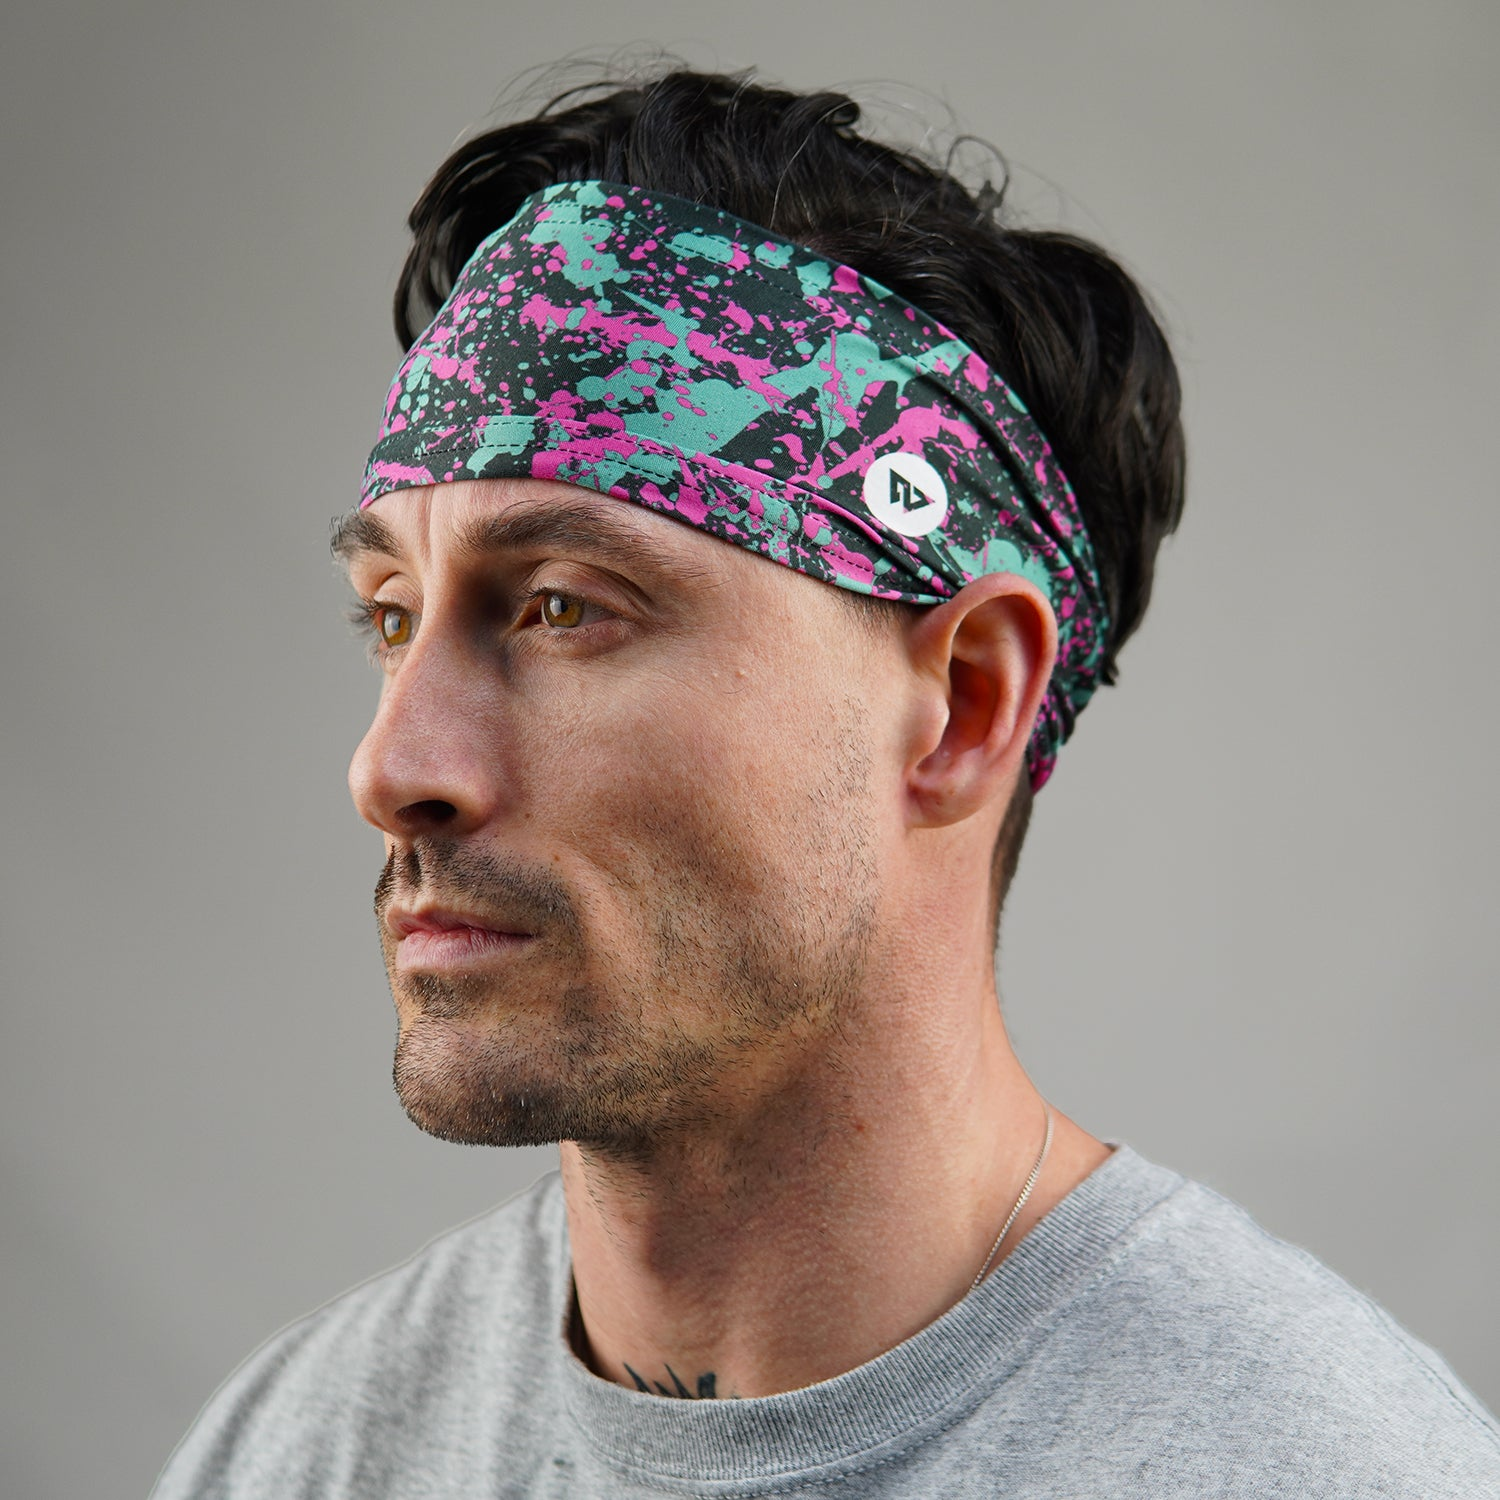 Scatter Brain Headband